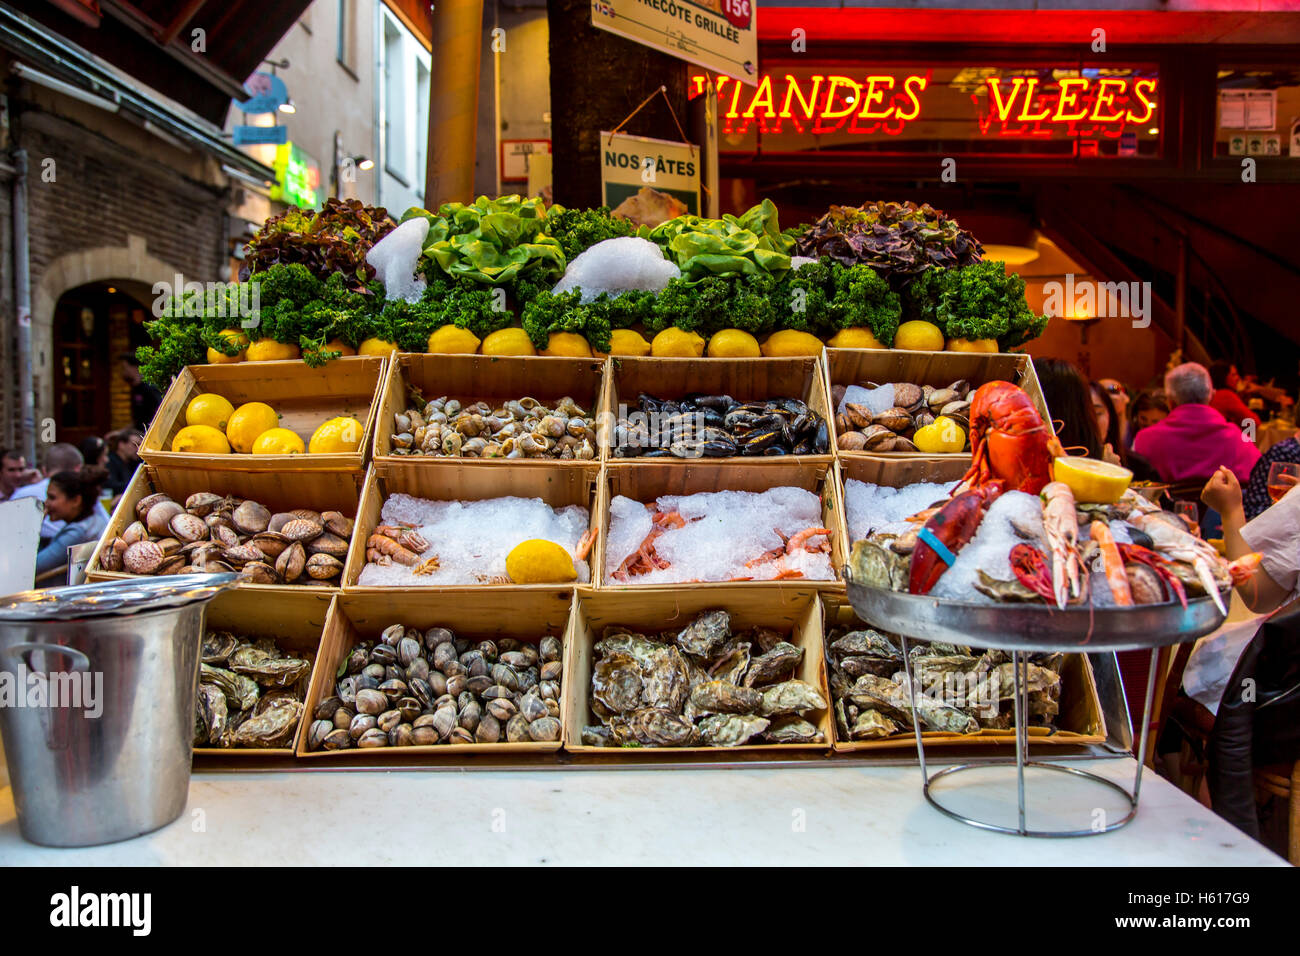 Restaurants, bars, cafes in the old town streets near the Grand Place, food lane,  Brussels, Belgium, shellfish, - Stock Image